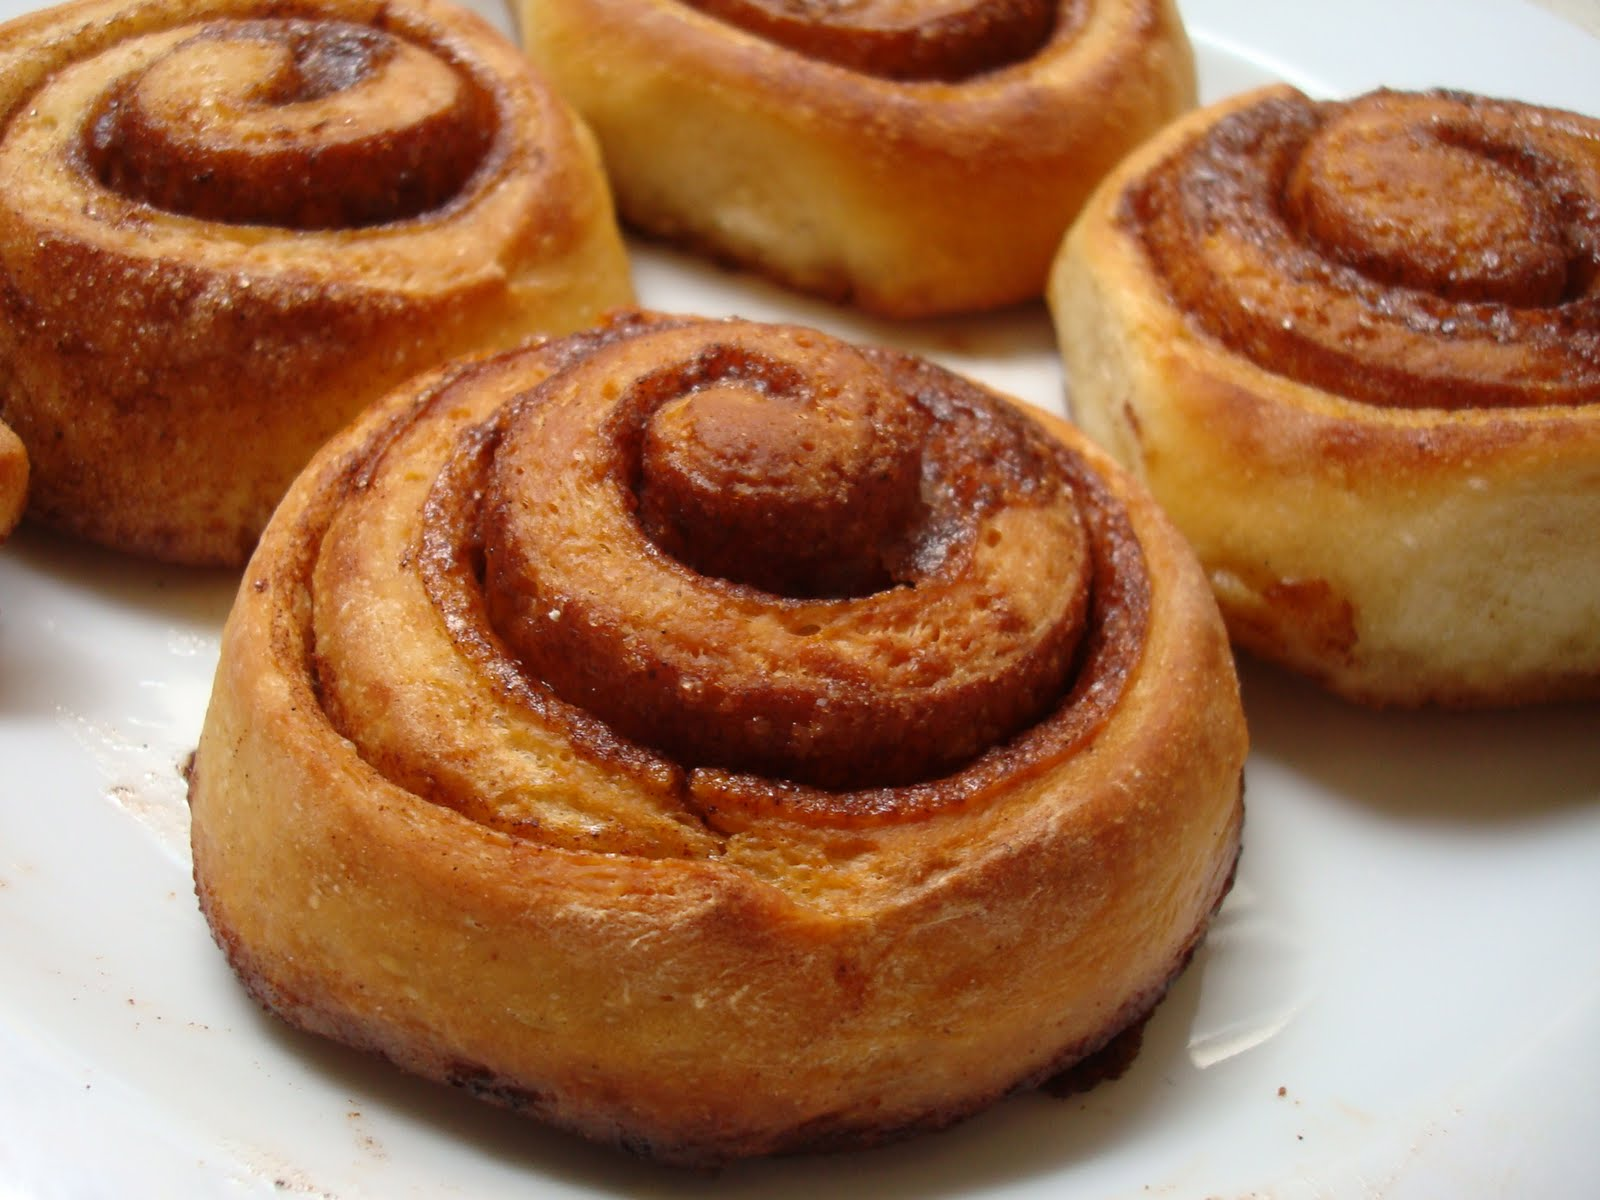 ... blueberry swirl cinnamon rolls perfect cinnamon rolls cinnamon buns